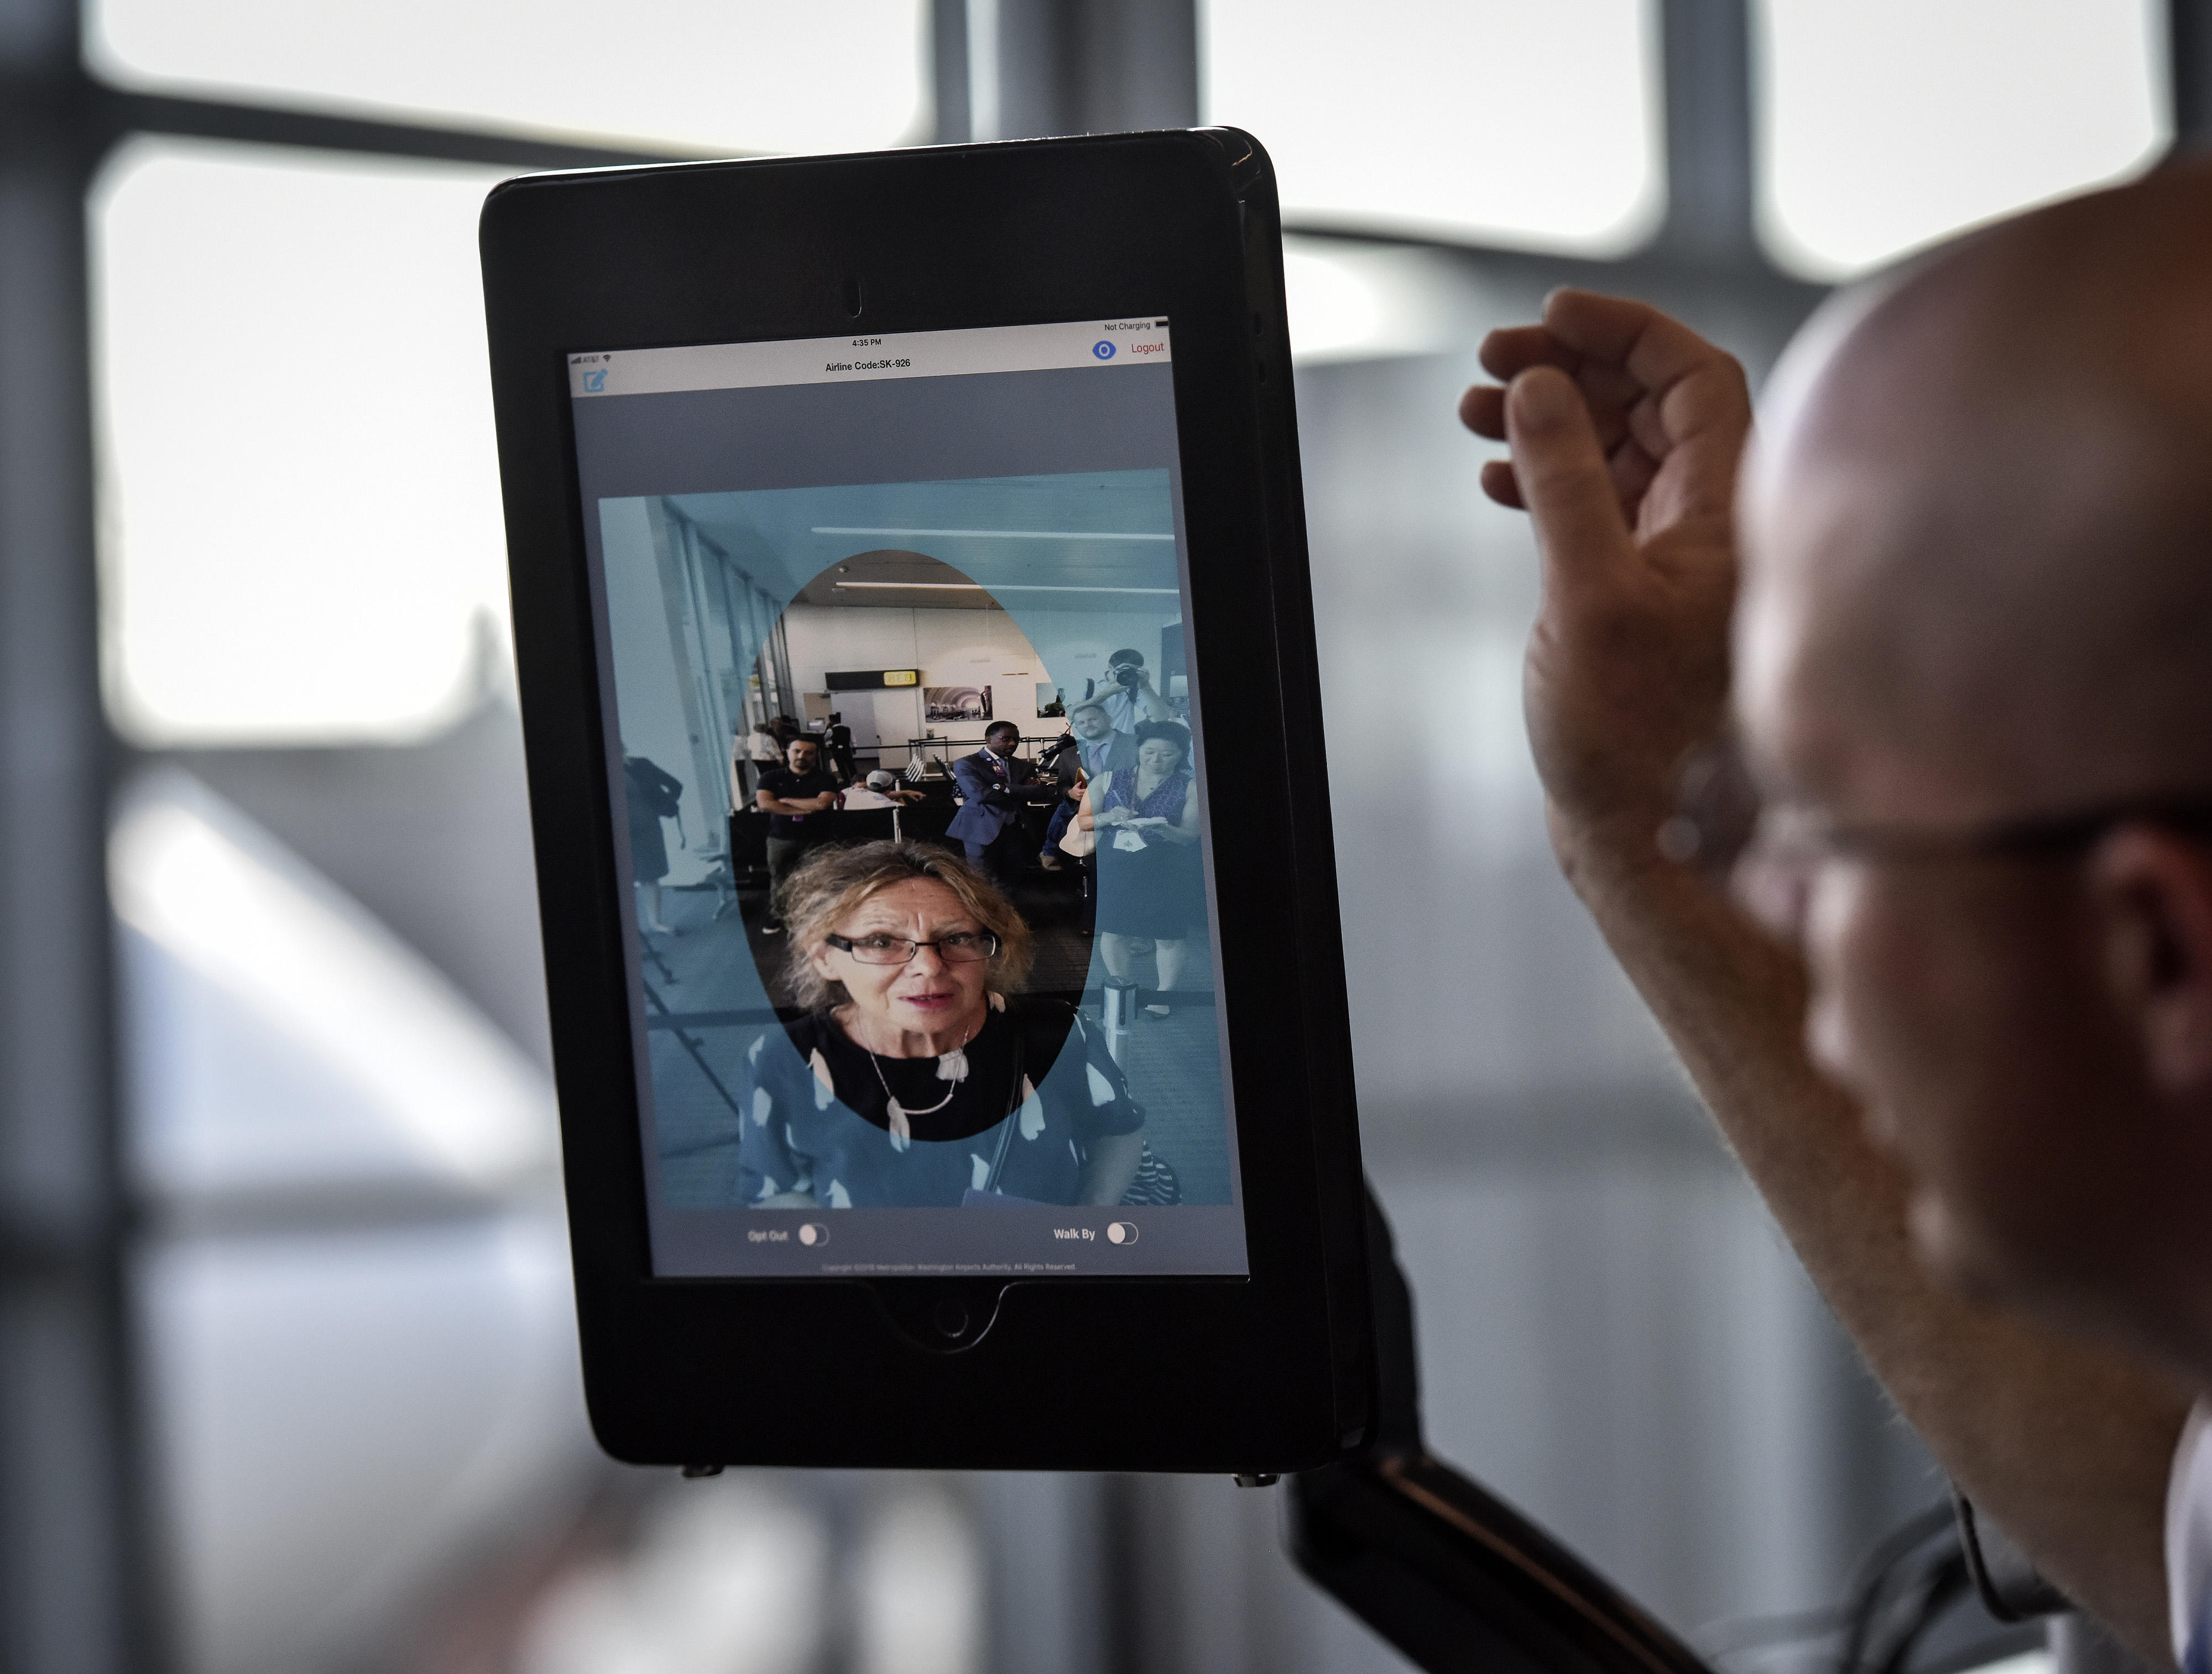 A woman's face appears on a screen while an airport official stands close by.